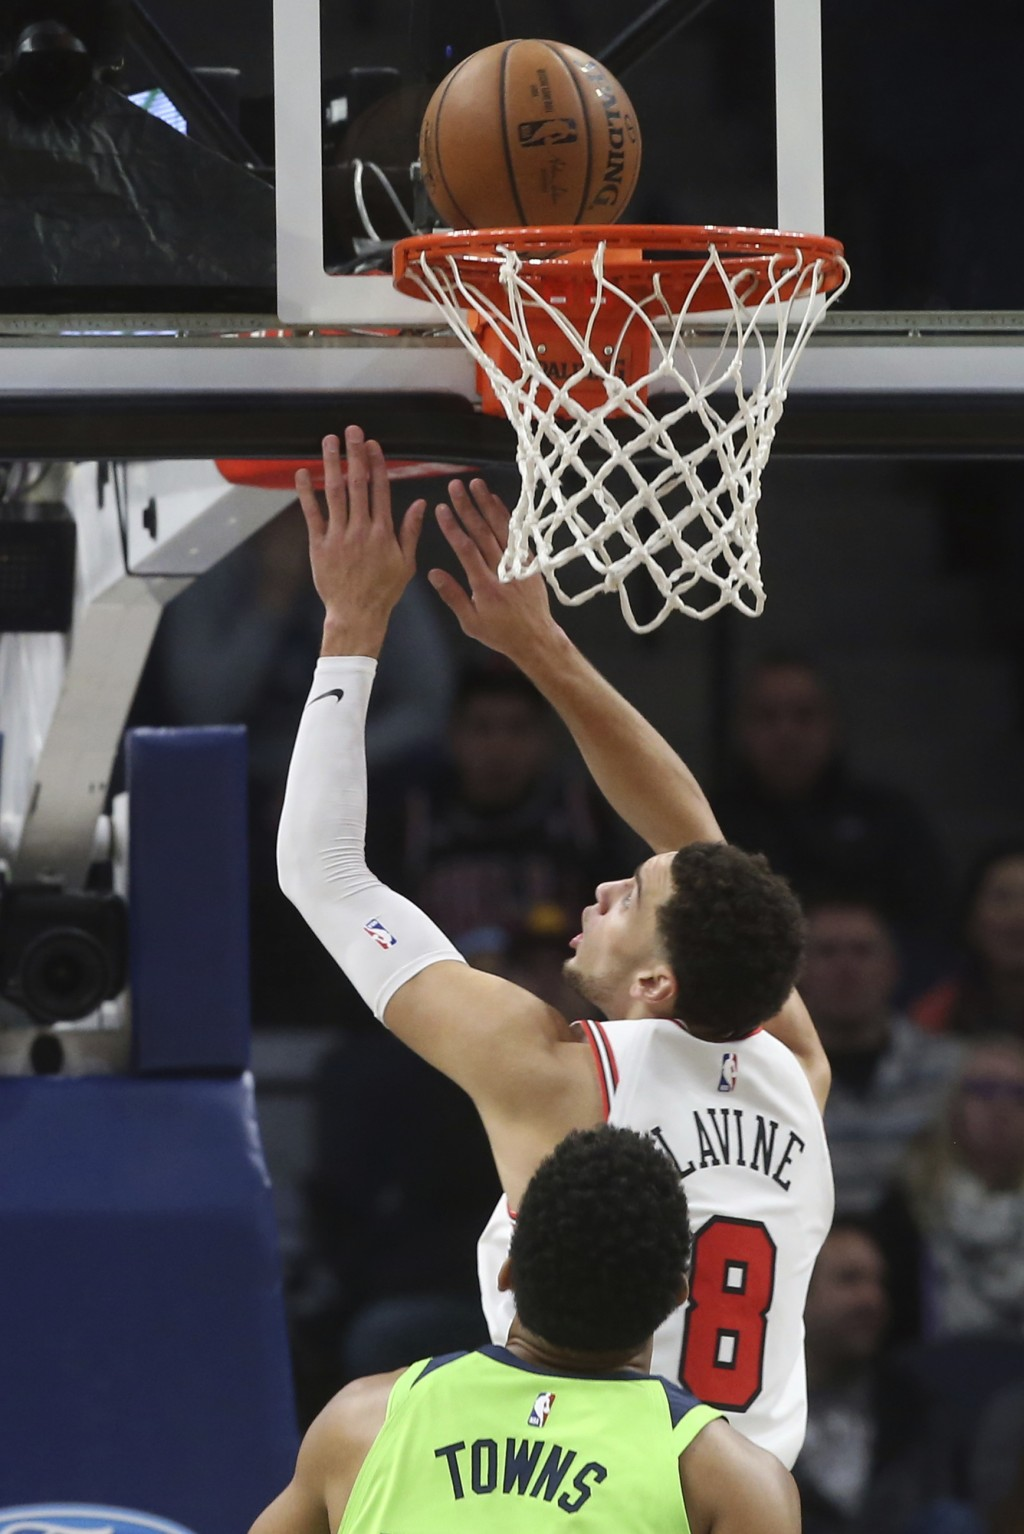 Chicago Bulls' Zach LaVine makes a layup as Minnesota Timberwolves' Karl-Anthony Towns watches in the first half of an NBA basketball game Saturday, N...